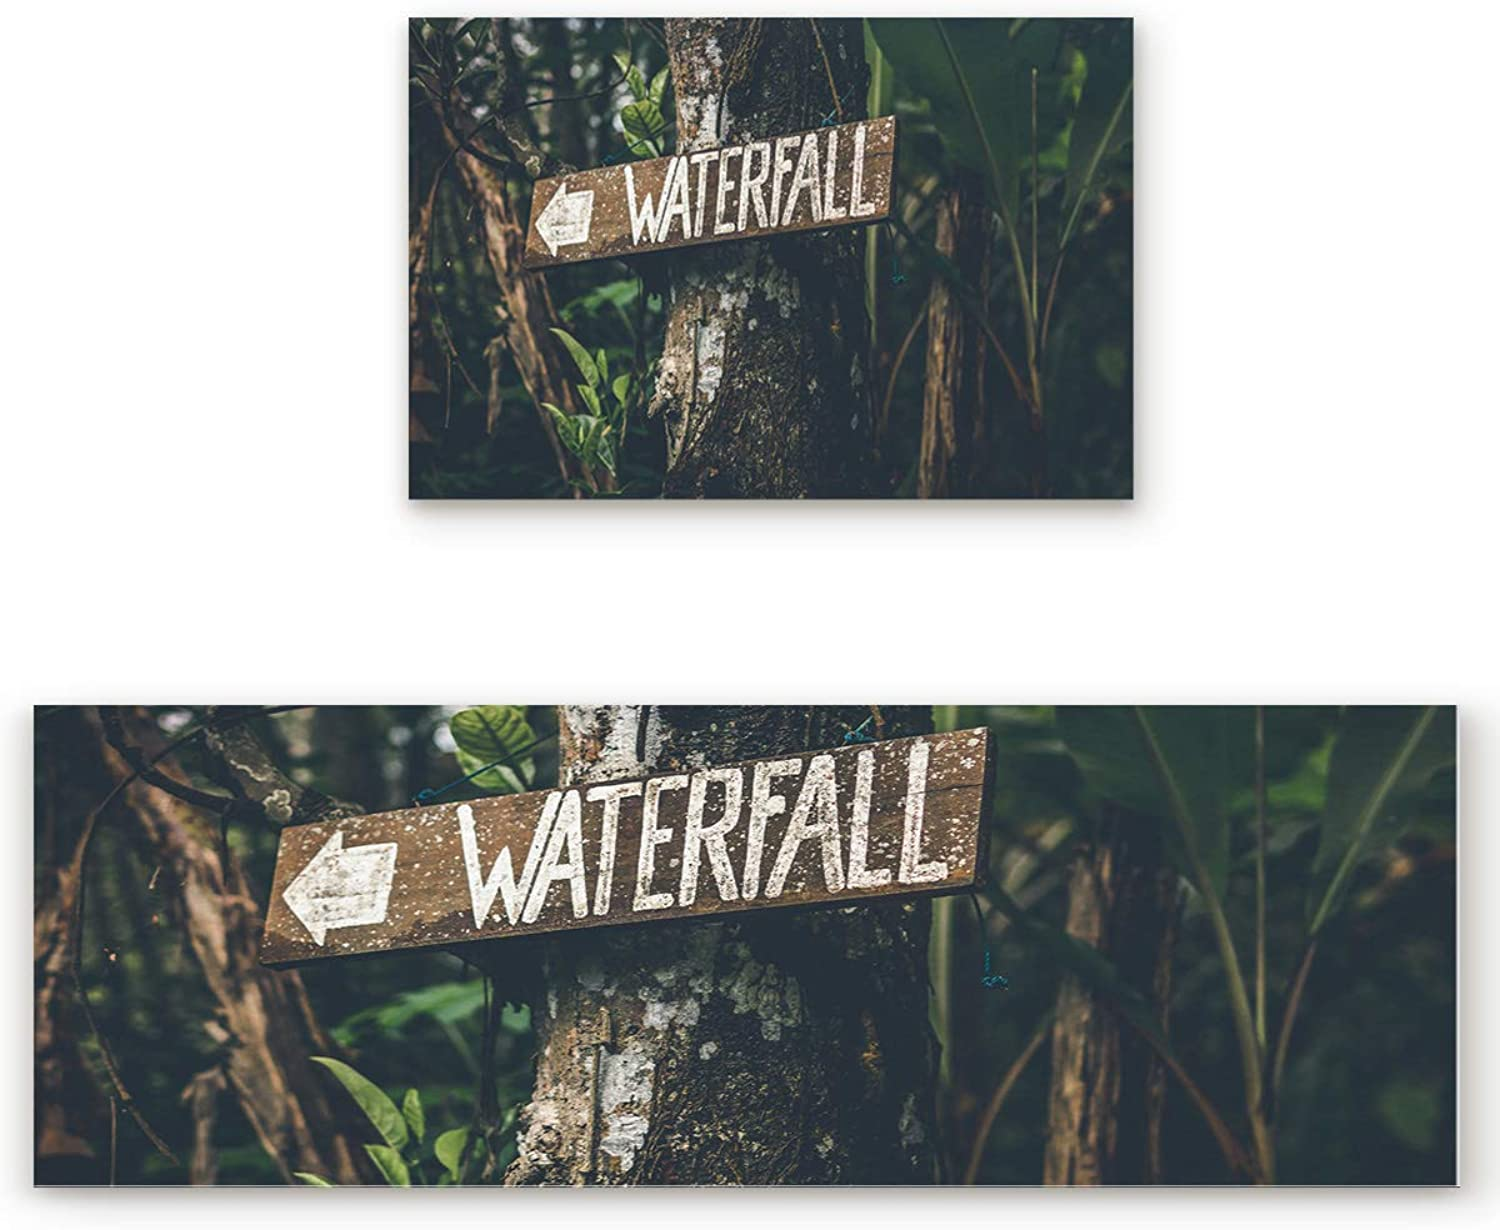 Savannan 2 Piece Non-Slip Kitchen Bathroom Entrance Mat Absorbent Durable Floor Doormat Runner Rug Set - Tropical Thailand Botanical Garden Signpost Waterfall